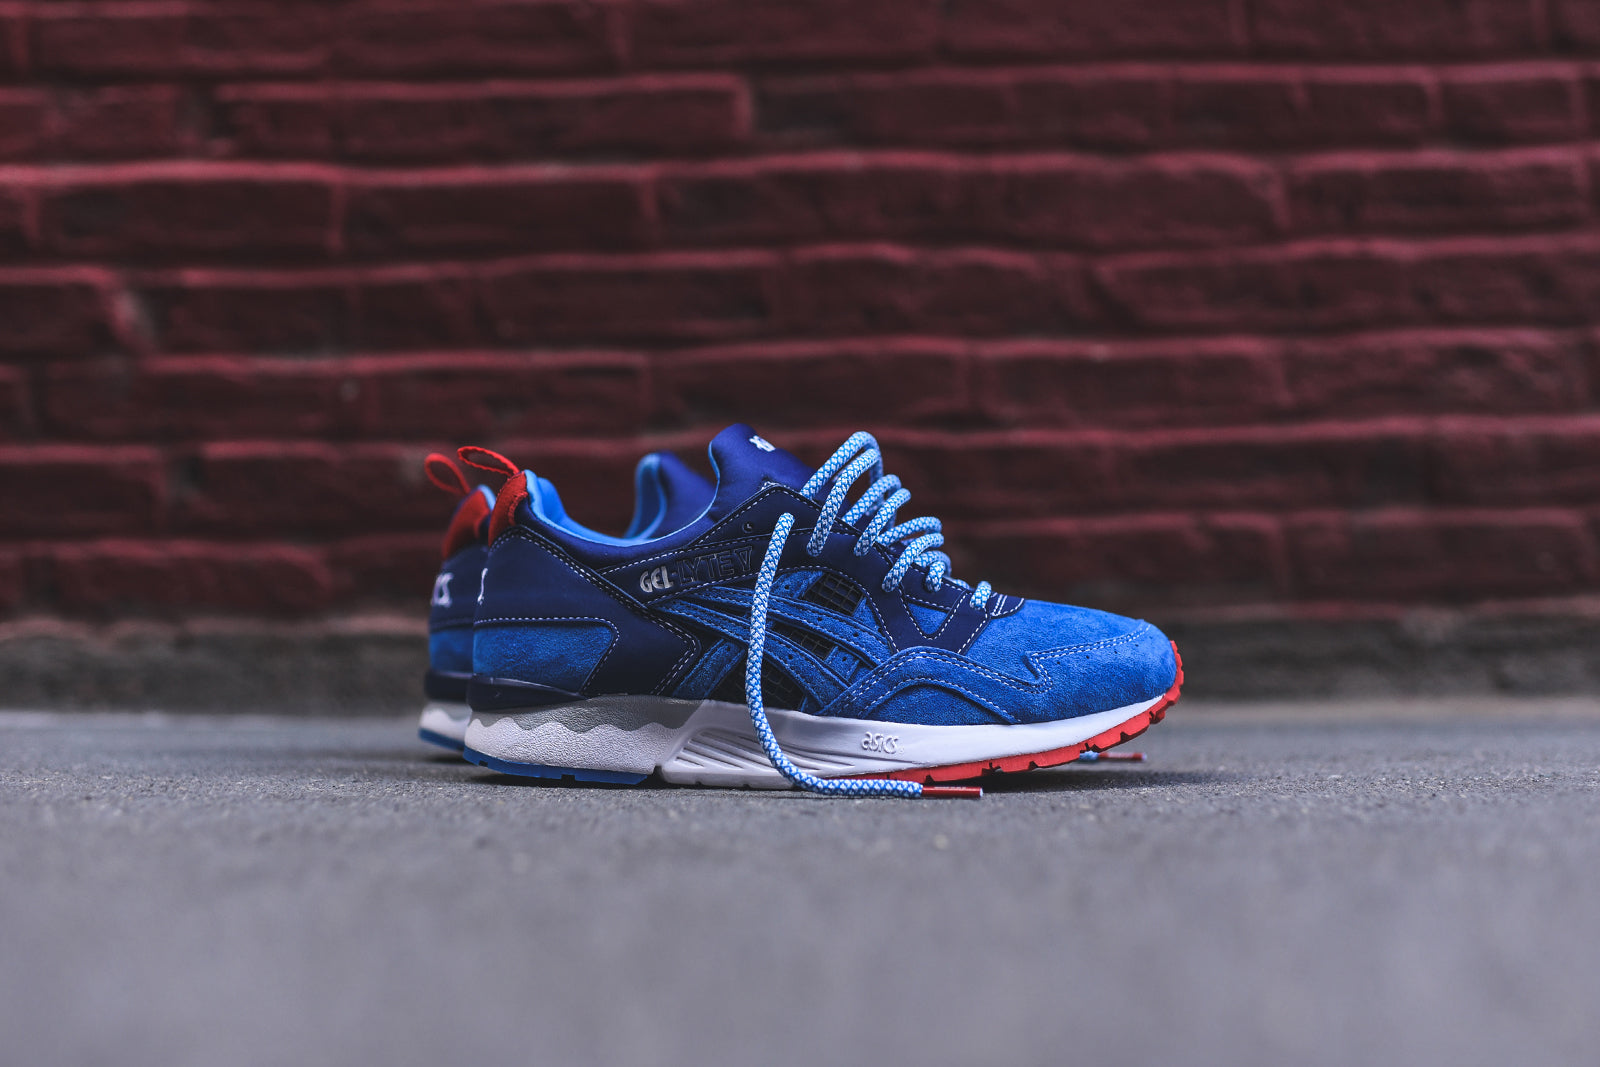 new product 2d0be d7164 Asics x mita sneakers Gel Lyte V - Trico – Kith